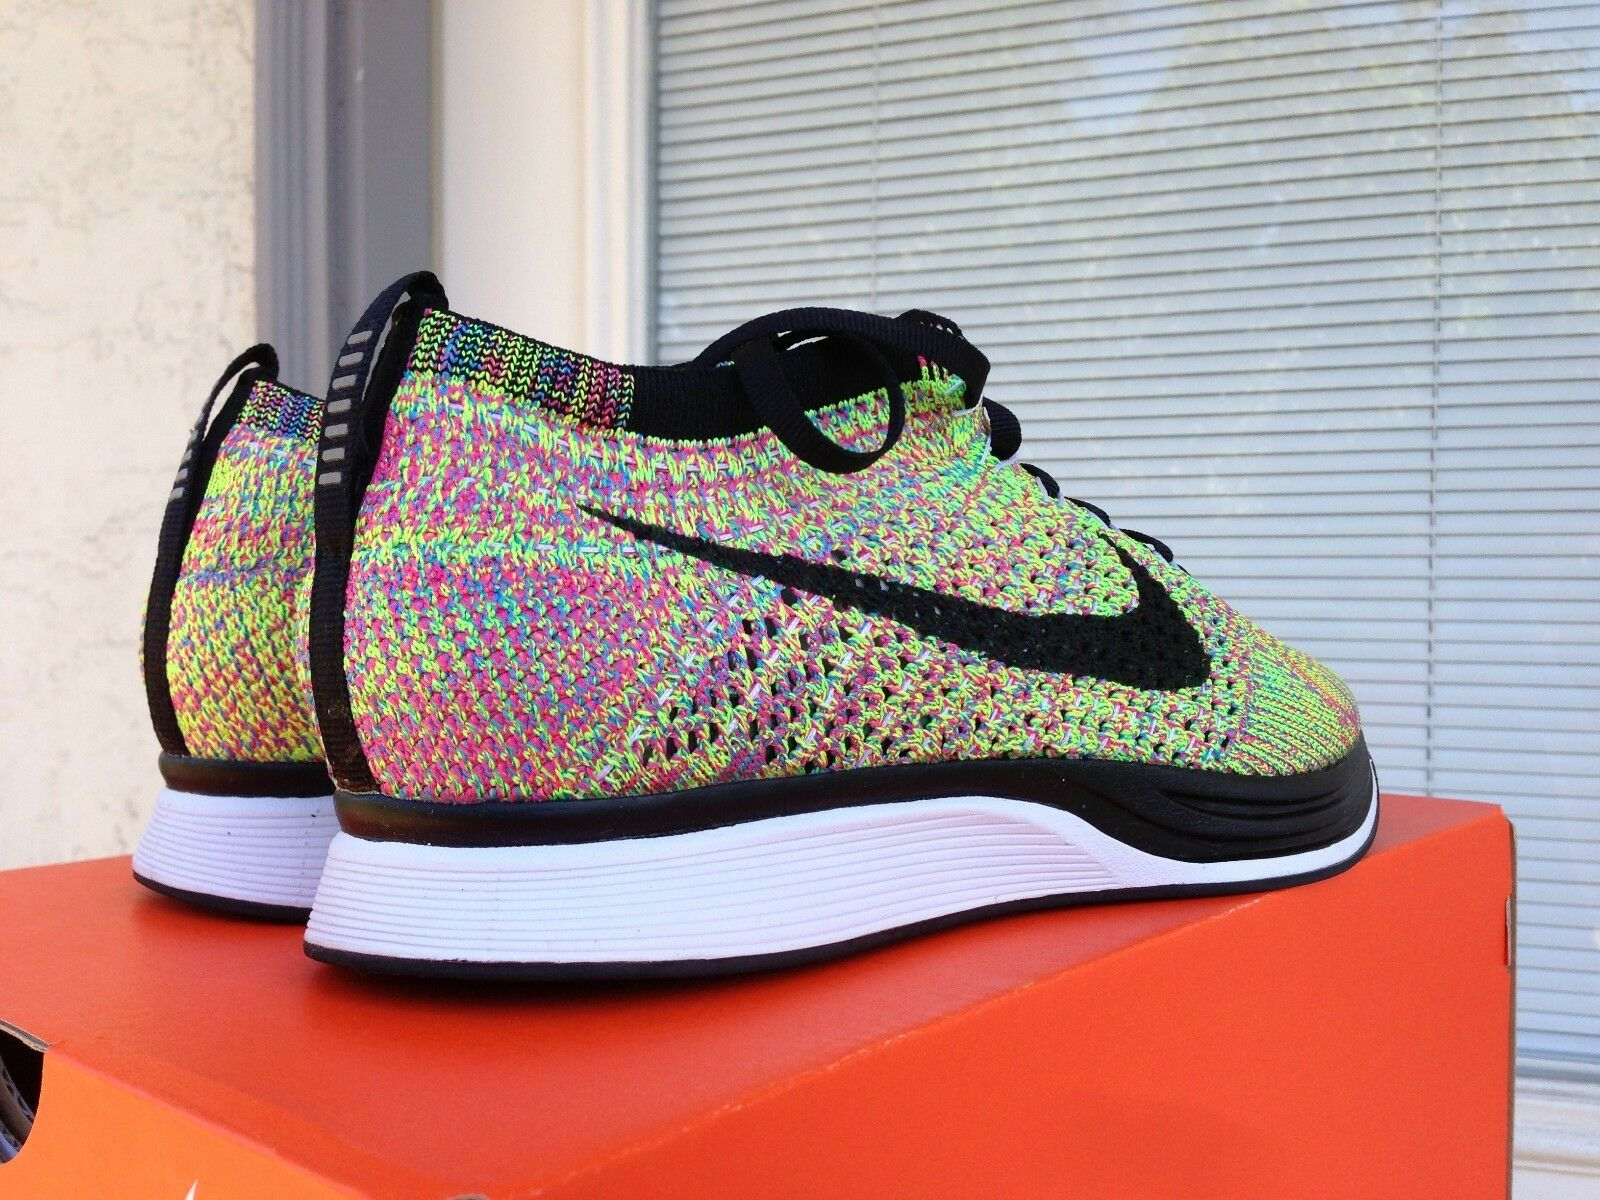 NIke flyknit racer original 1.0 multicolor htm oreos turquois  size 8